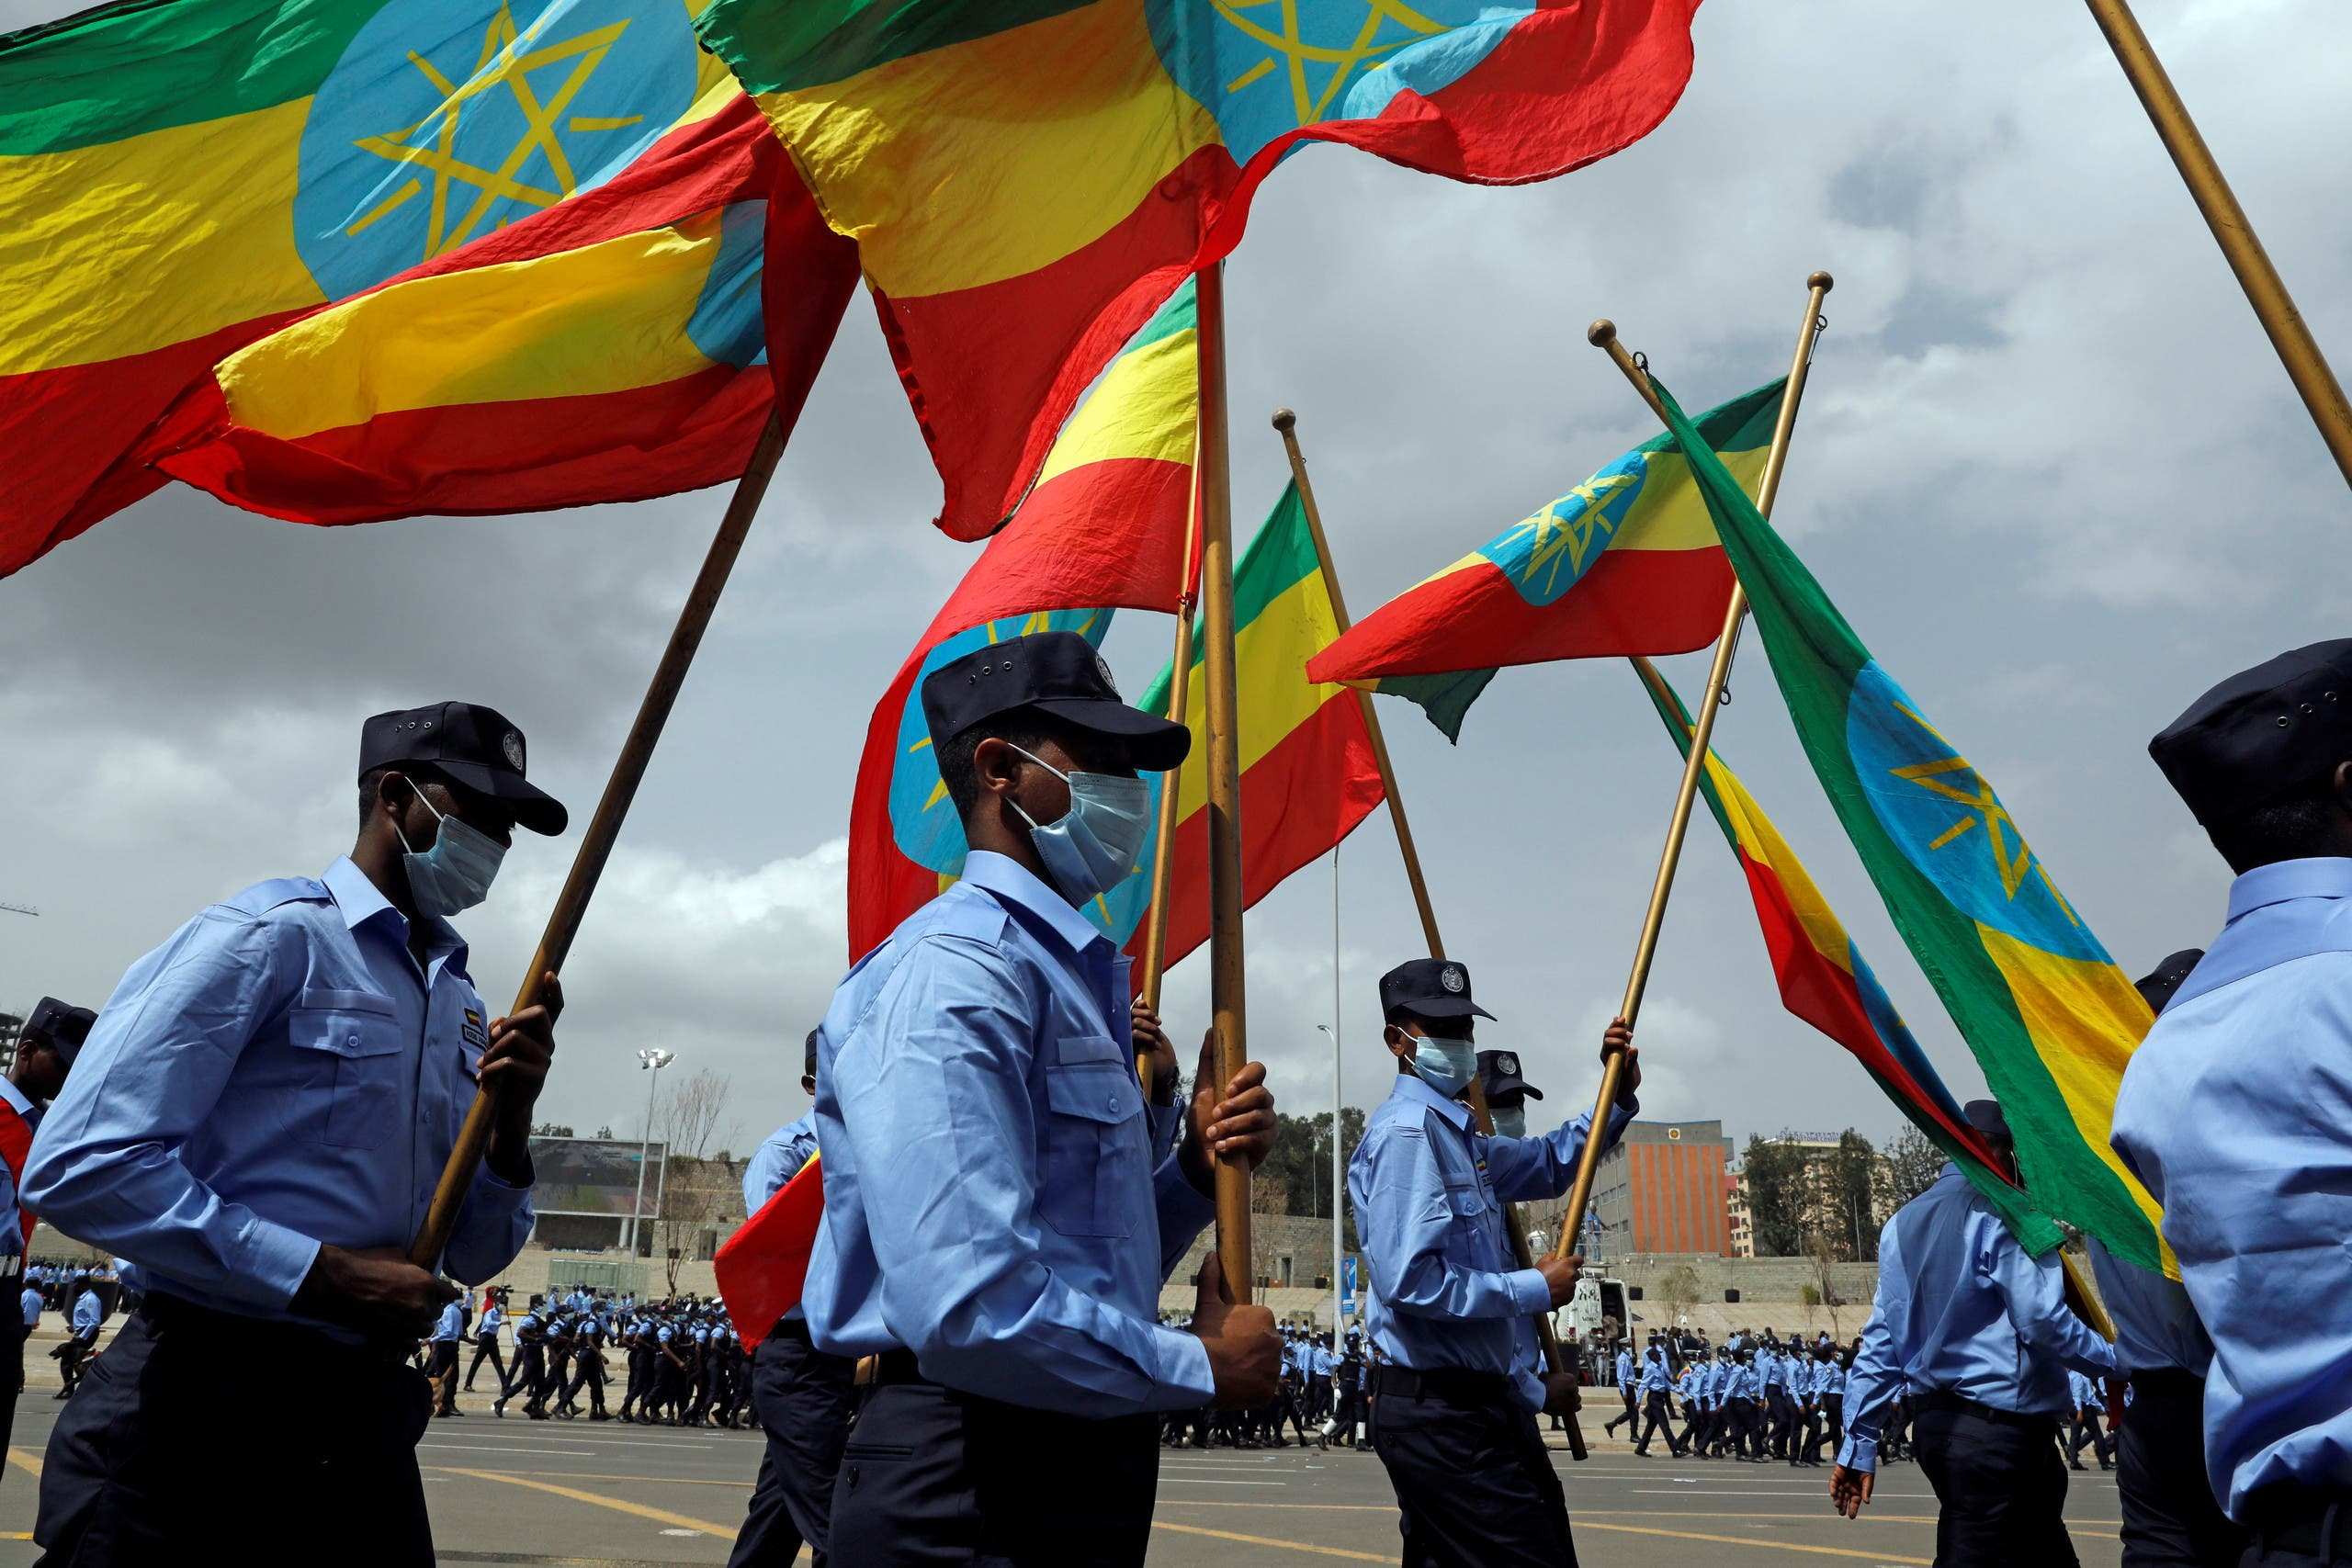 Addis Ababa police officers holding the Ethiopian national flags, take part in a parade to display their new uniforms, and their readiness for the upcoming Ethiopian parliamentary and regional elections, in Addis Ababa, Ethiopia, June 19, 2021. (File photo: Reuters)